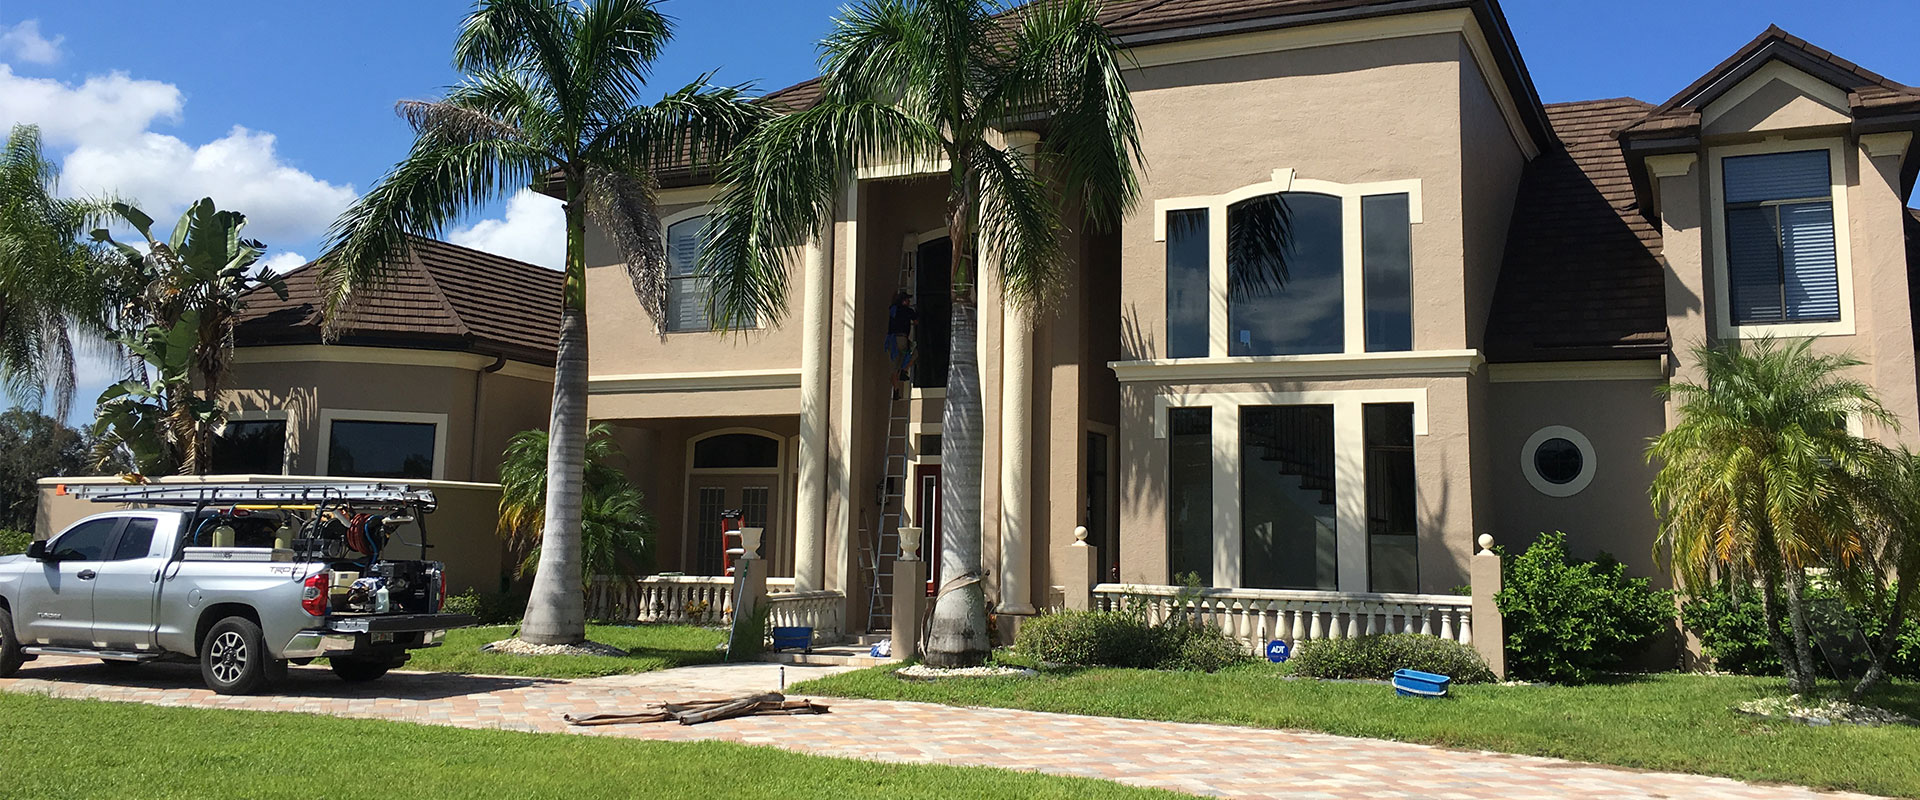 Residential Window Washers | Palm Harbor Pressure Washing